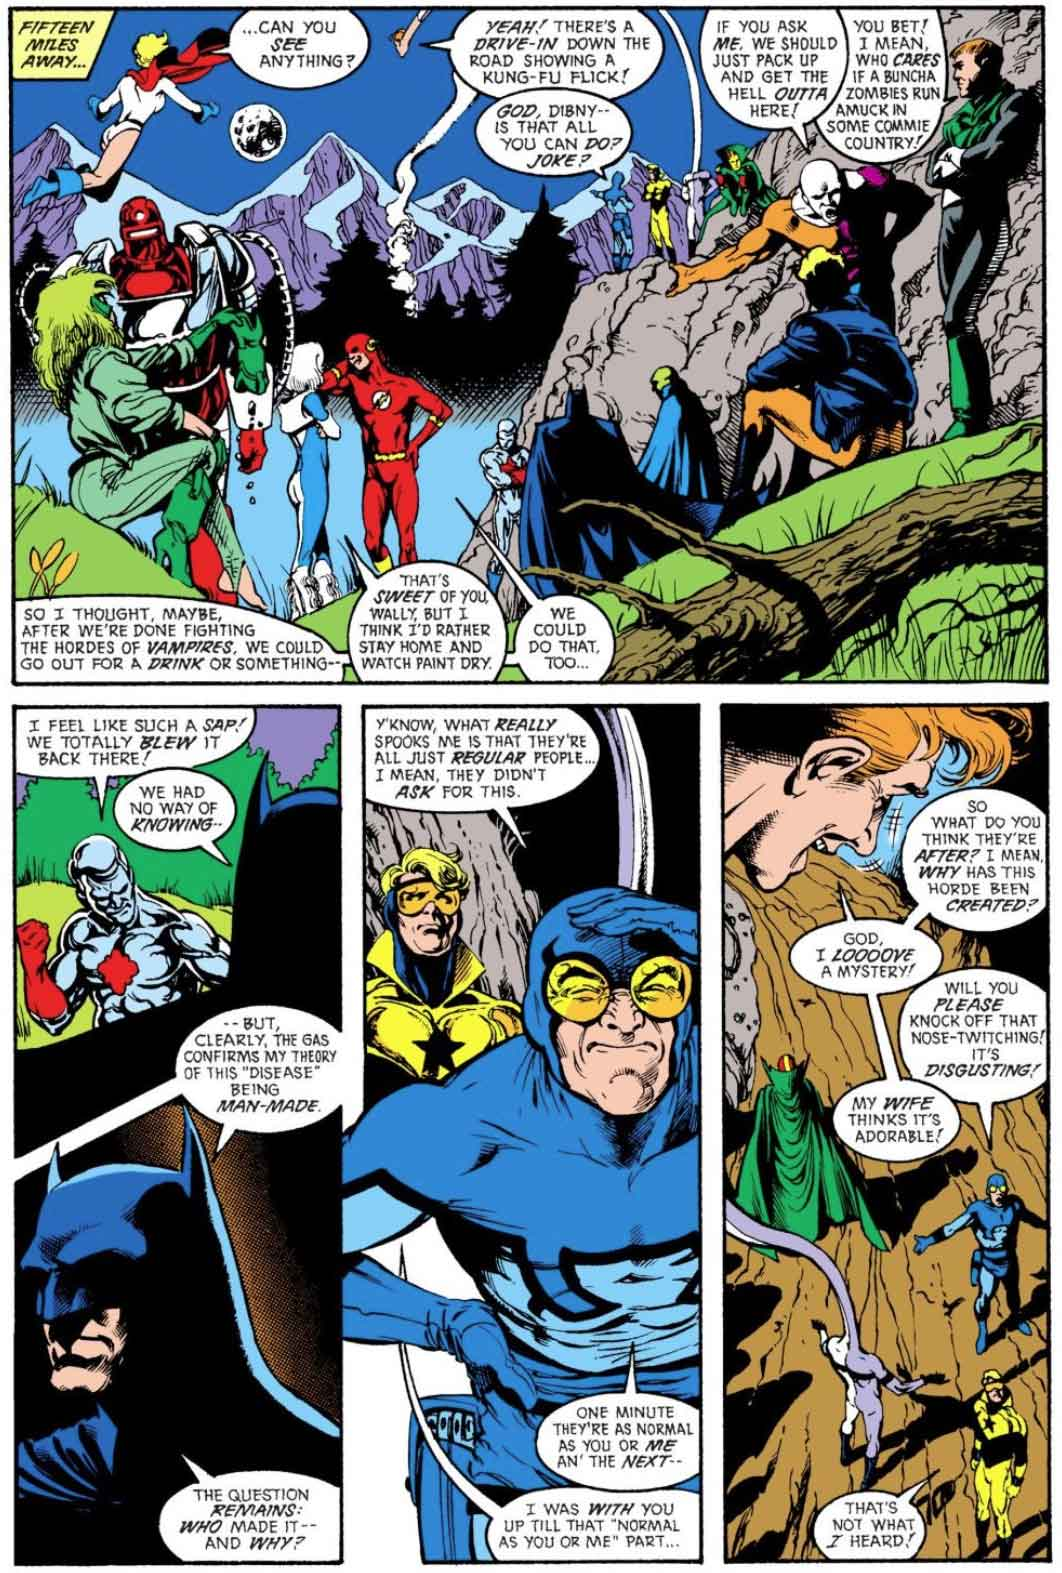 Justice League America #32 by Keith Giffen, J.M. DeMatteis, Adam Hughes, and Art Nichols